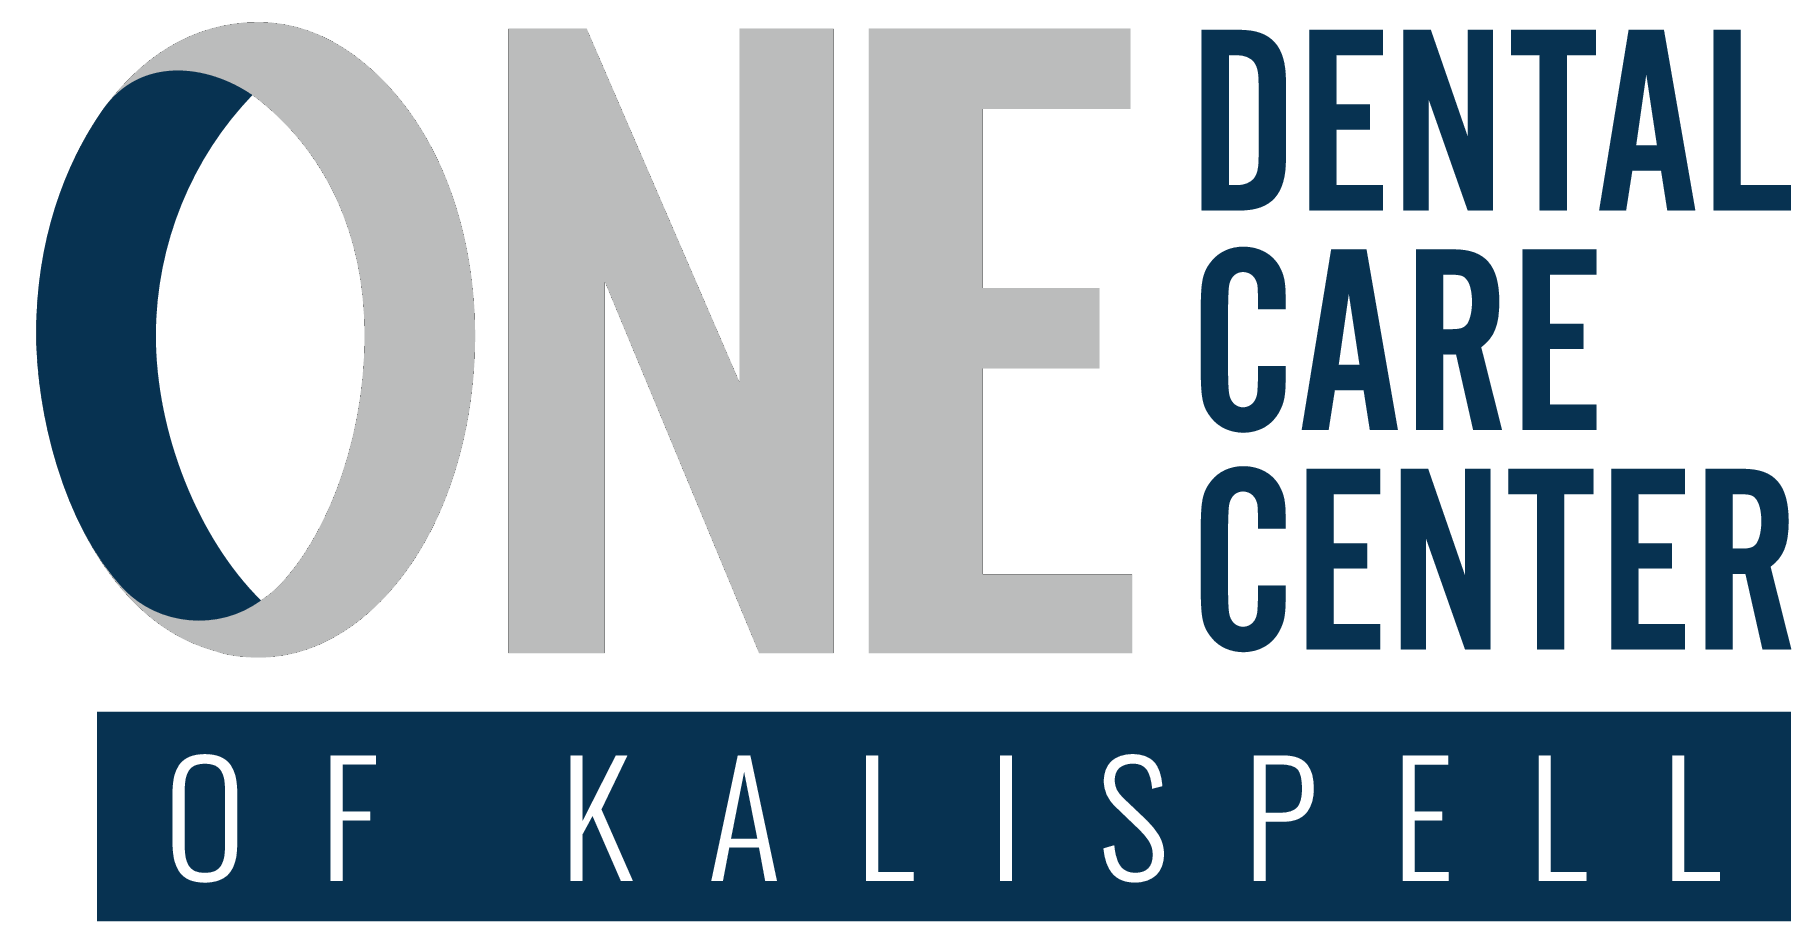 Dental Care Center of Kalispell